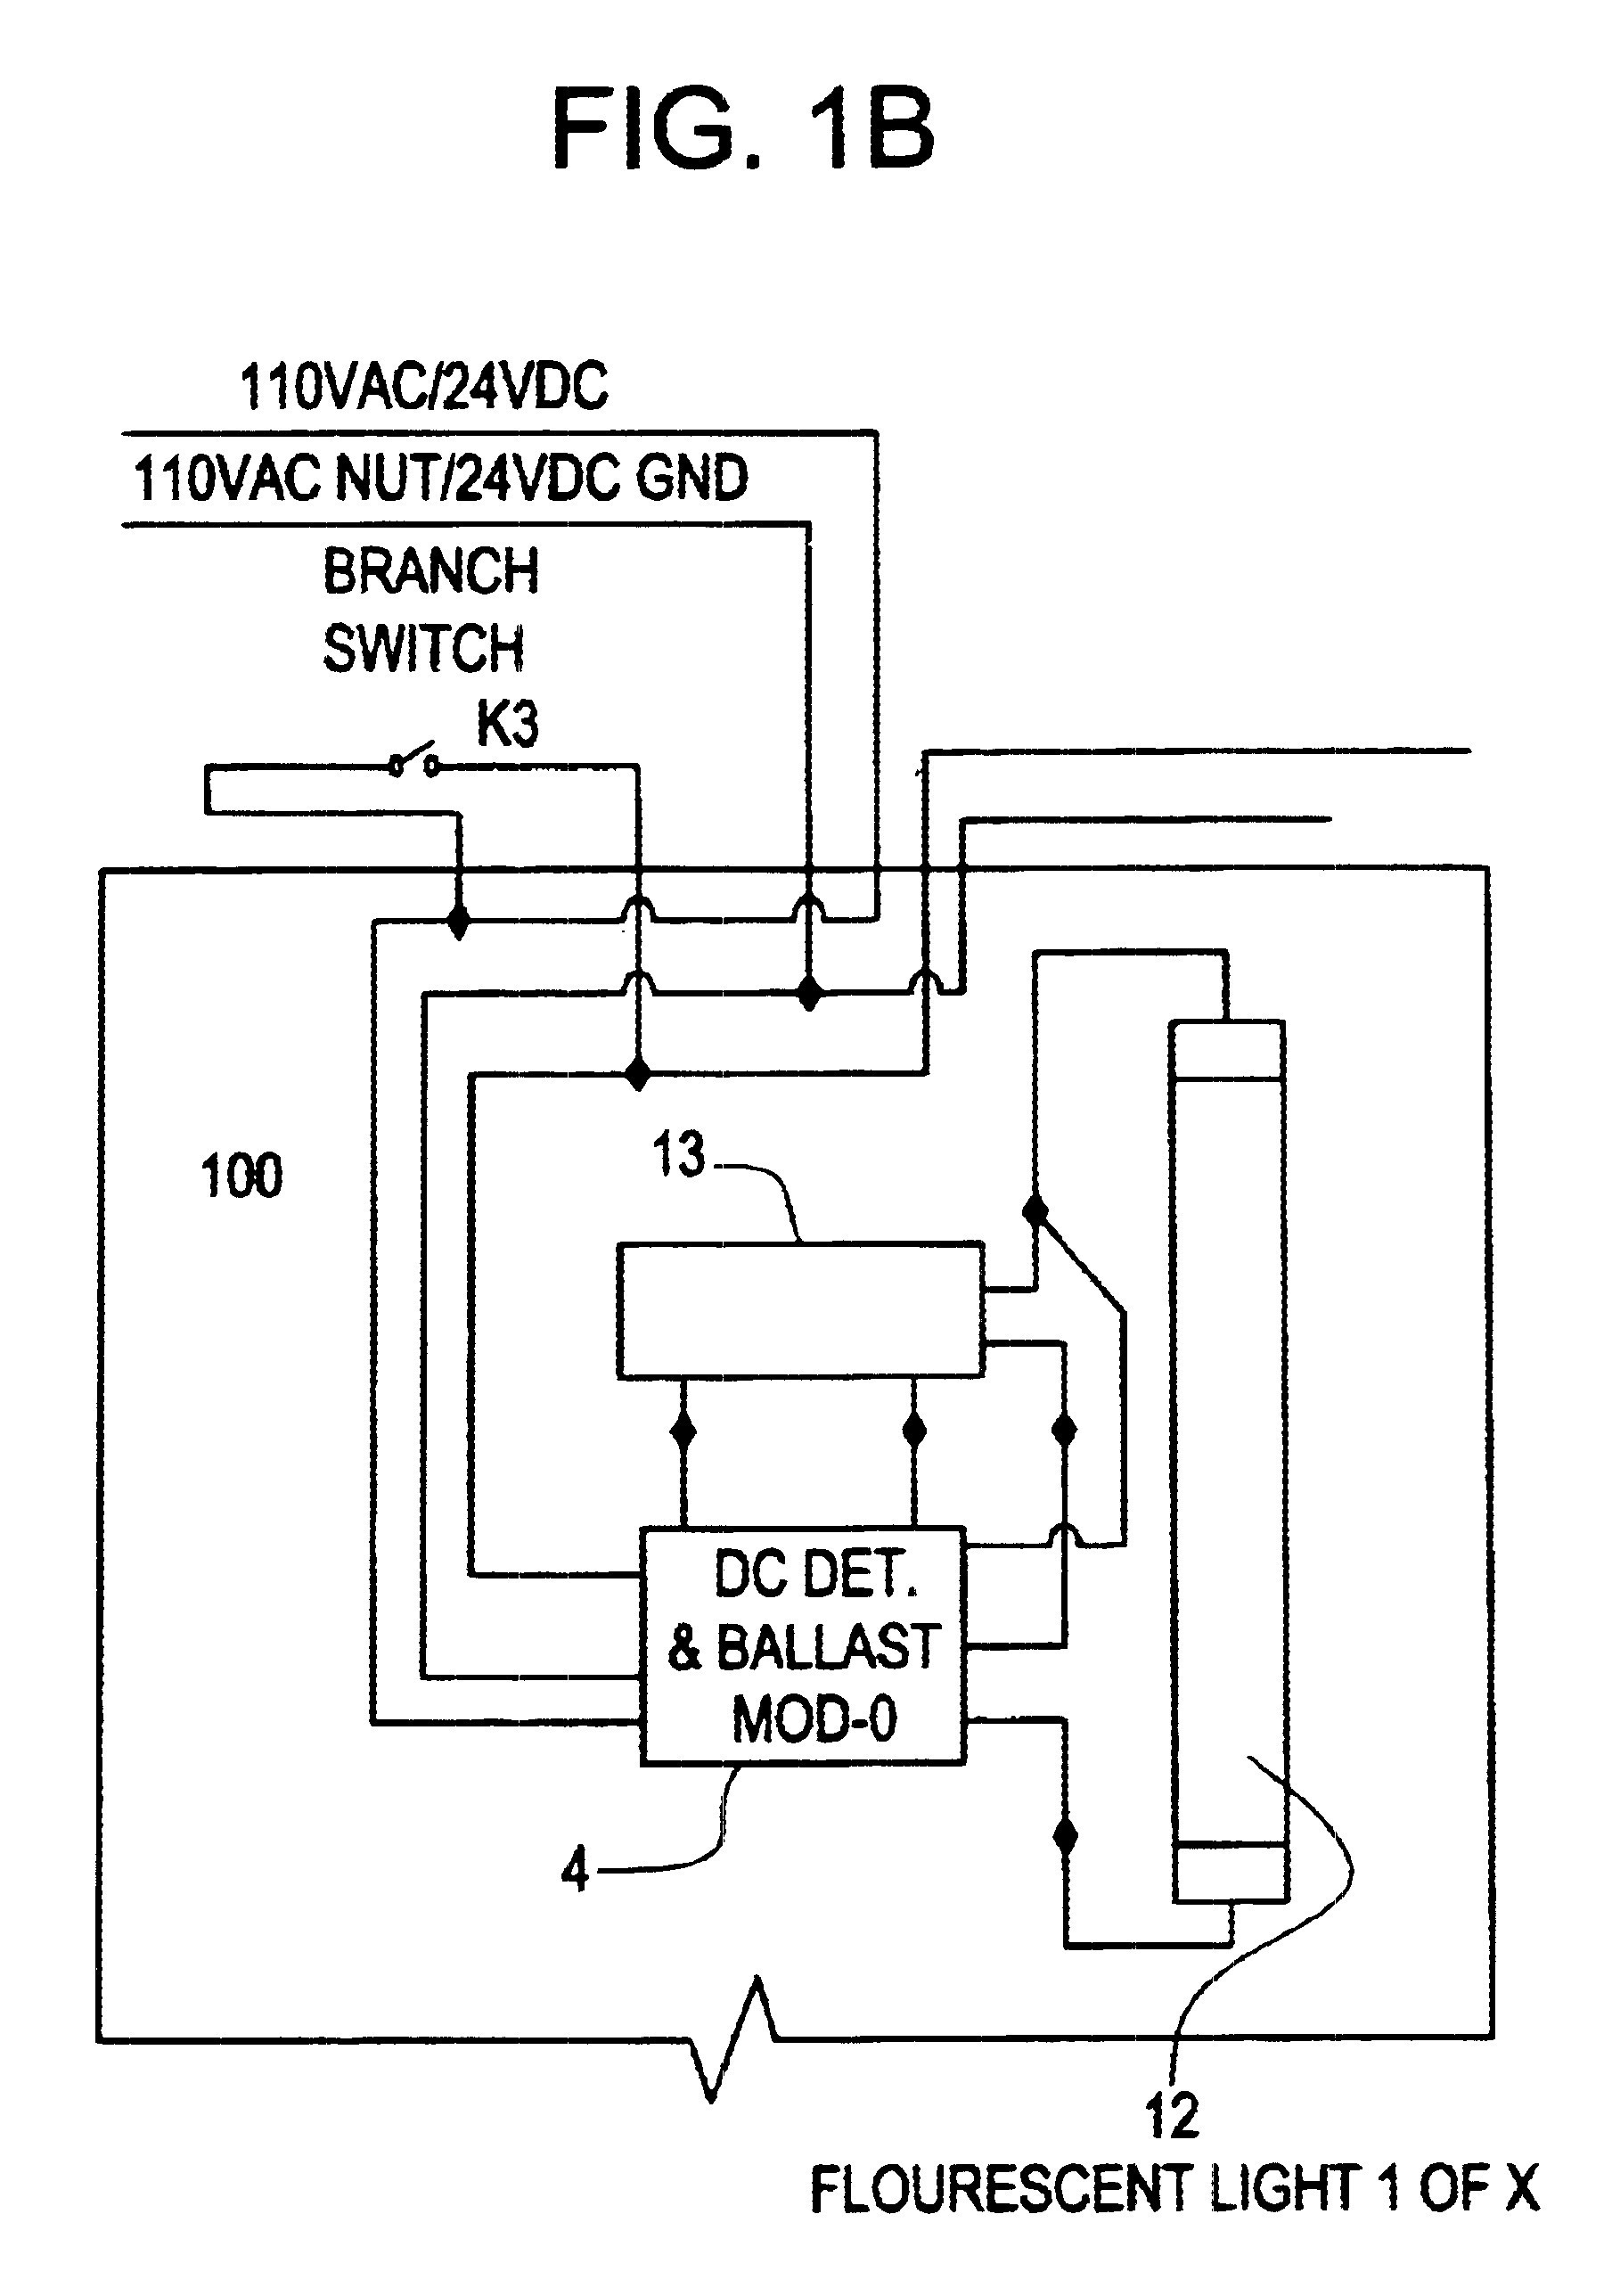 Philips Advance Ballast Wiring Diagram | Manual E-Books - Philips Advance Ballast Wiring Diagram